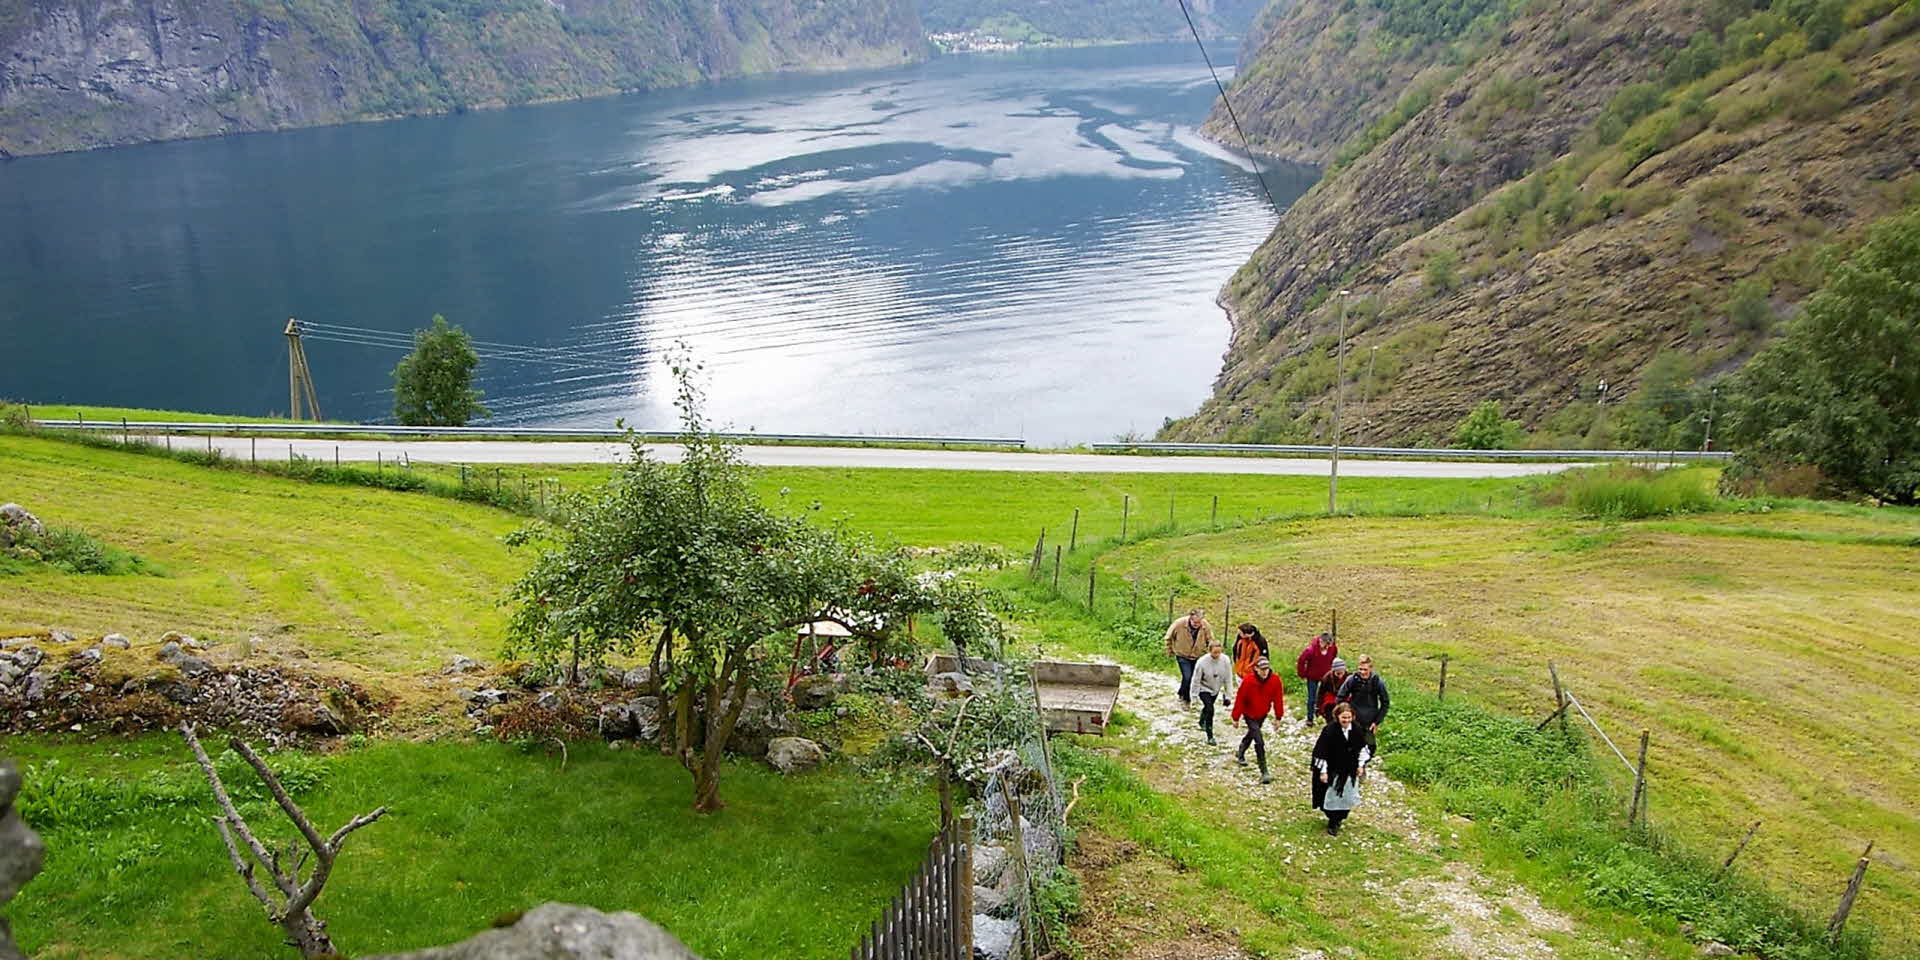 Guided group of 8 people walking up the steep trails to 'Skaldegard' farm, overlooking the Aurland fjord